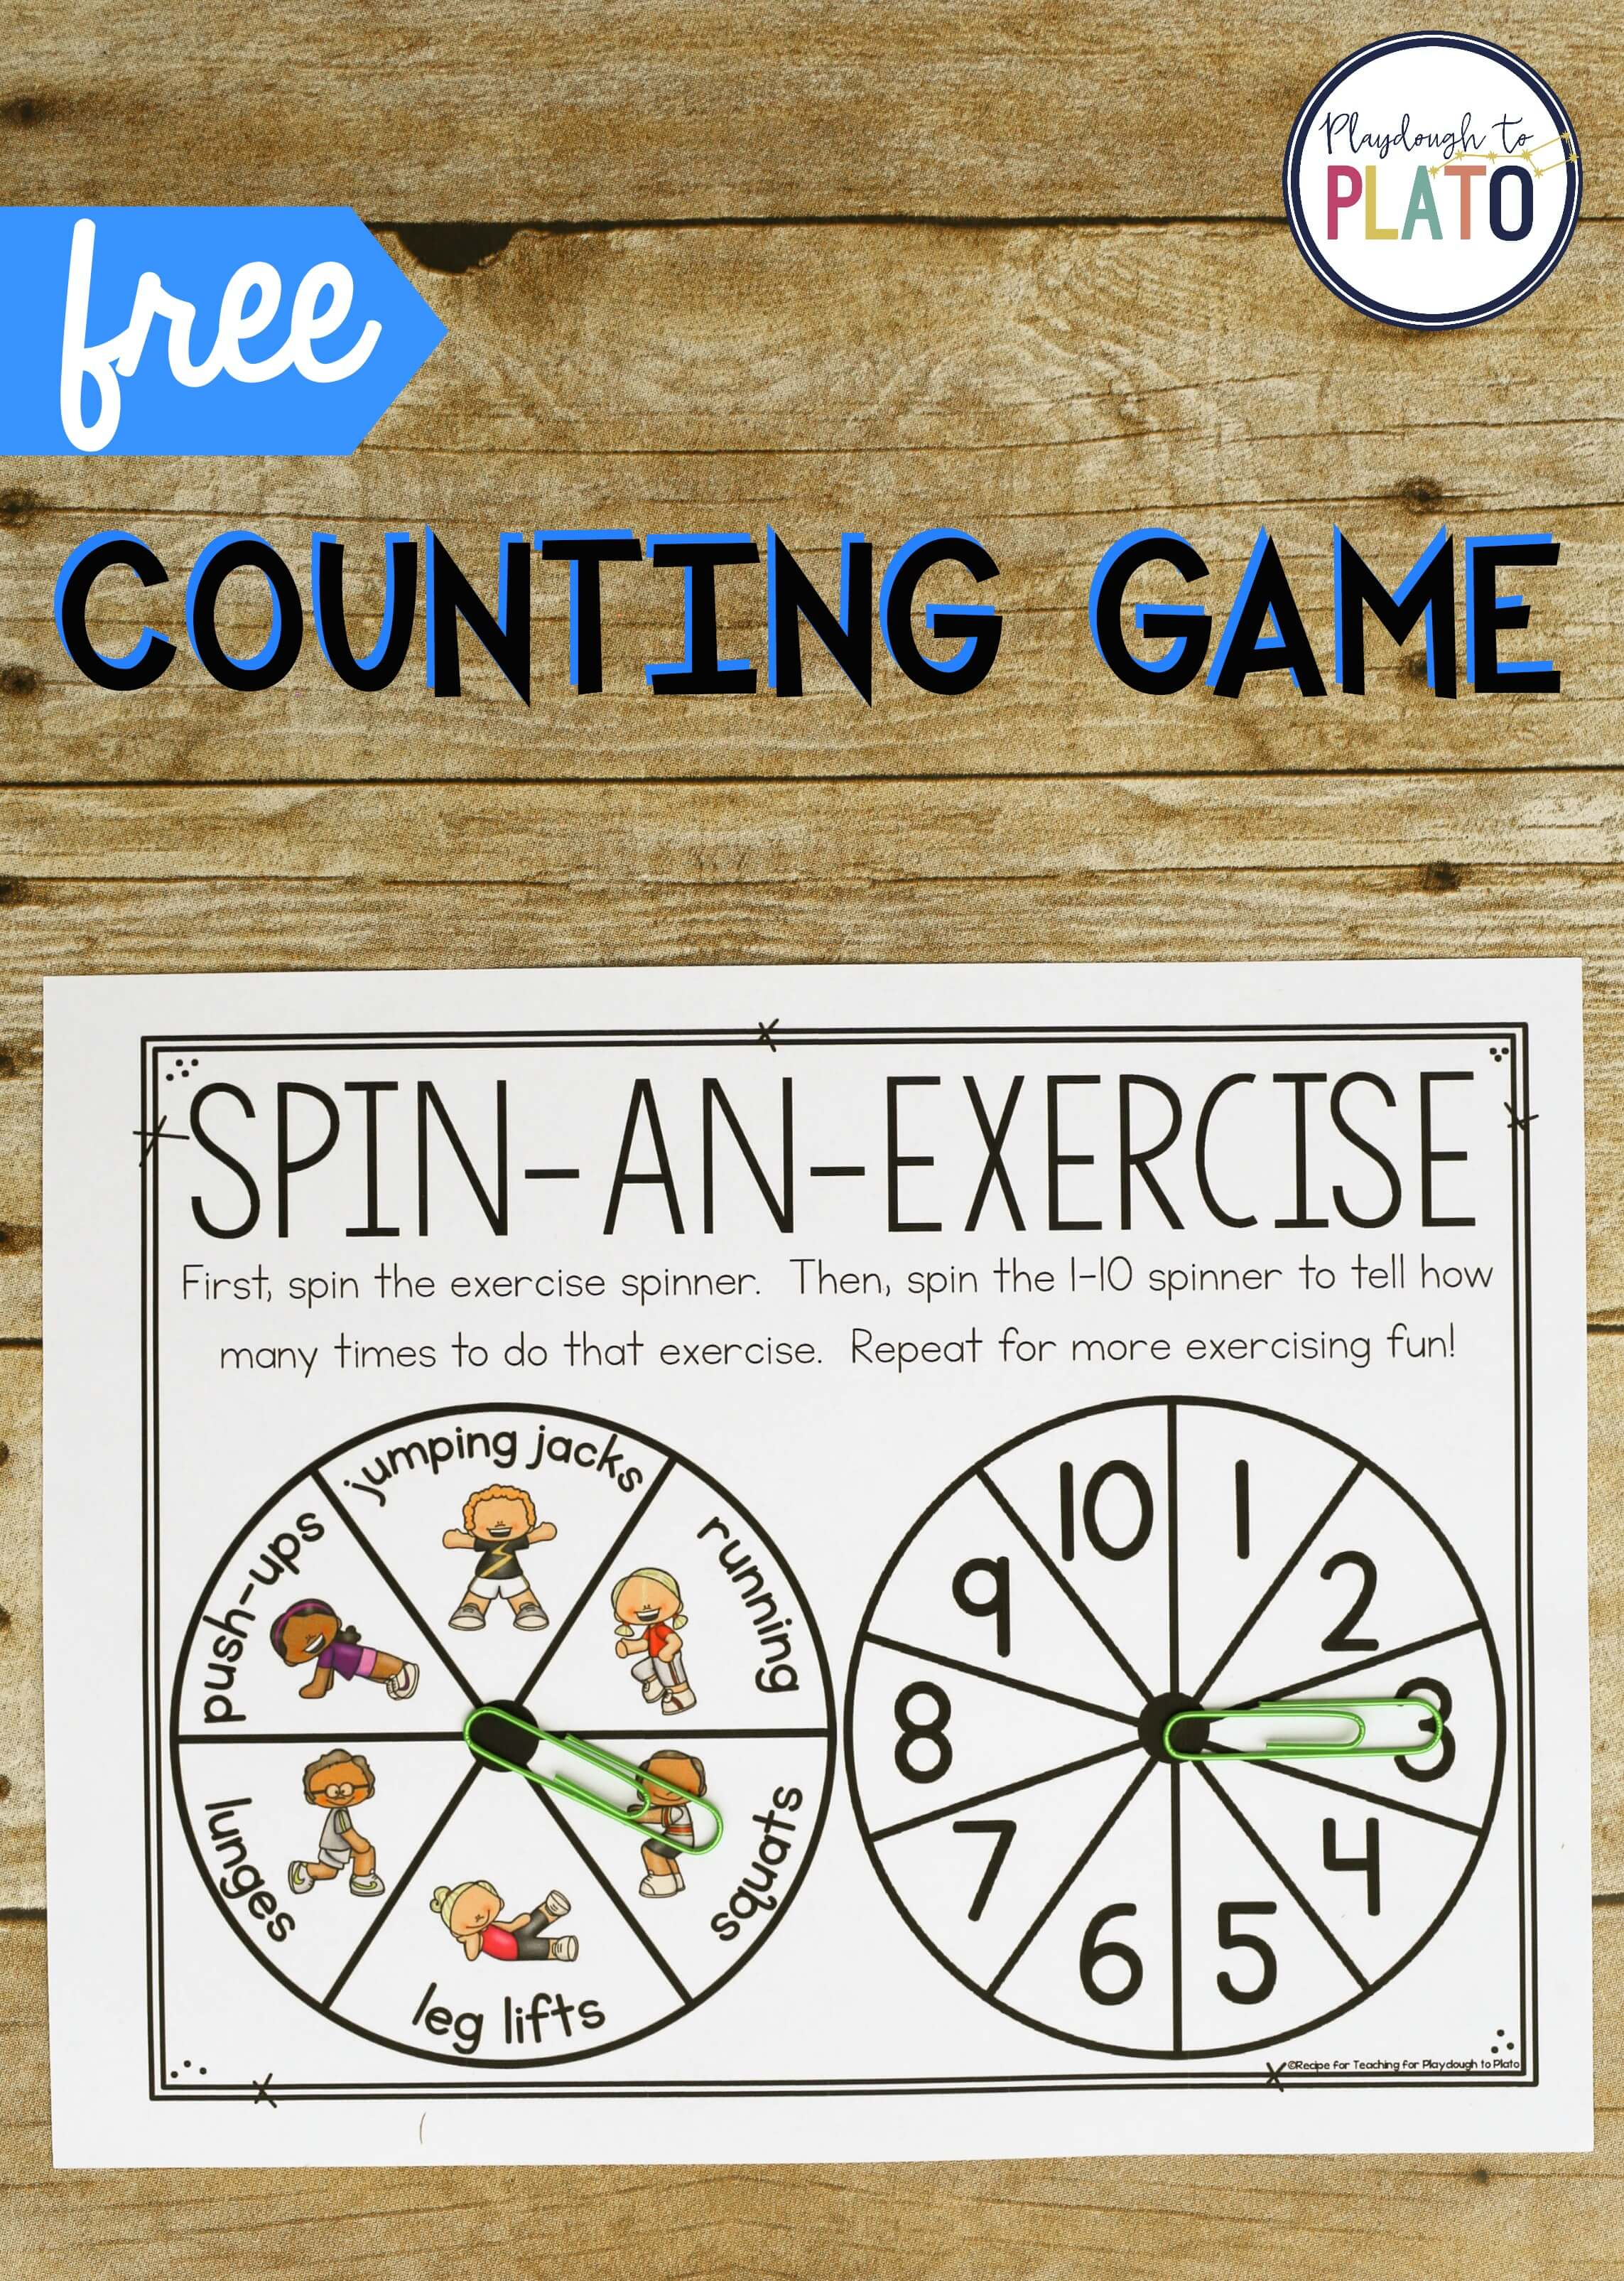 Exercise Counting Game Playdough To Plato